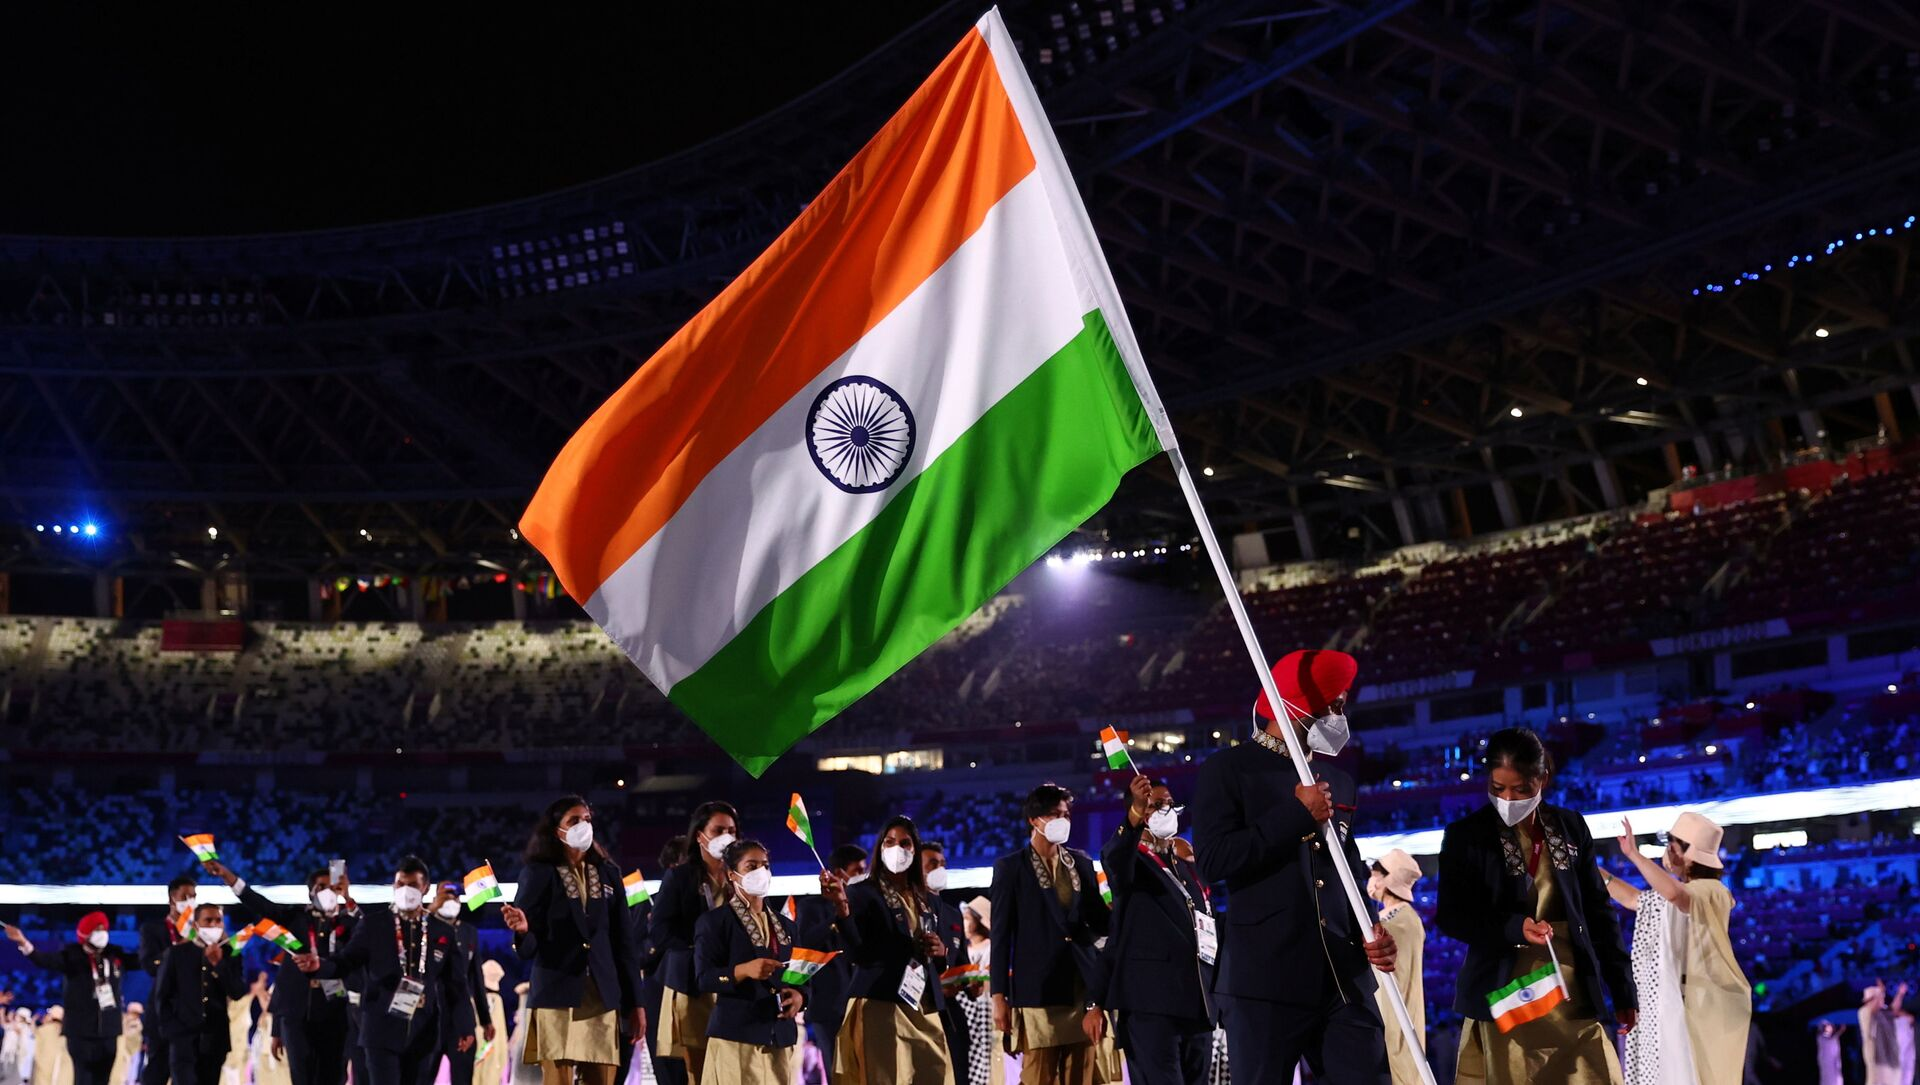 Tokyo 2020 Olympics - The Tokyo 2020 Olympics Opening Ceremony - Olympic Stadium, Tokyo, Japan - July 23, 2021. Flag bearers Harmanpreet Singh of India and Mary Kom Hmangte of India lead their contingent during the athletes' parade at the opening ceremony REUTERS/Kai Pfaffenbach - Sputnik International, 1920, 23.07.2021